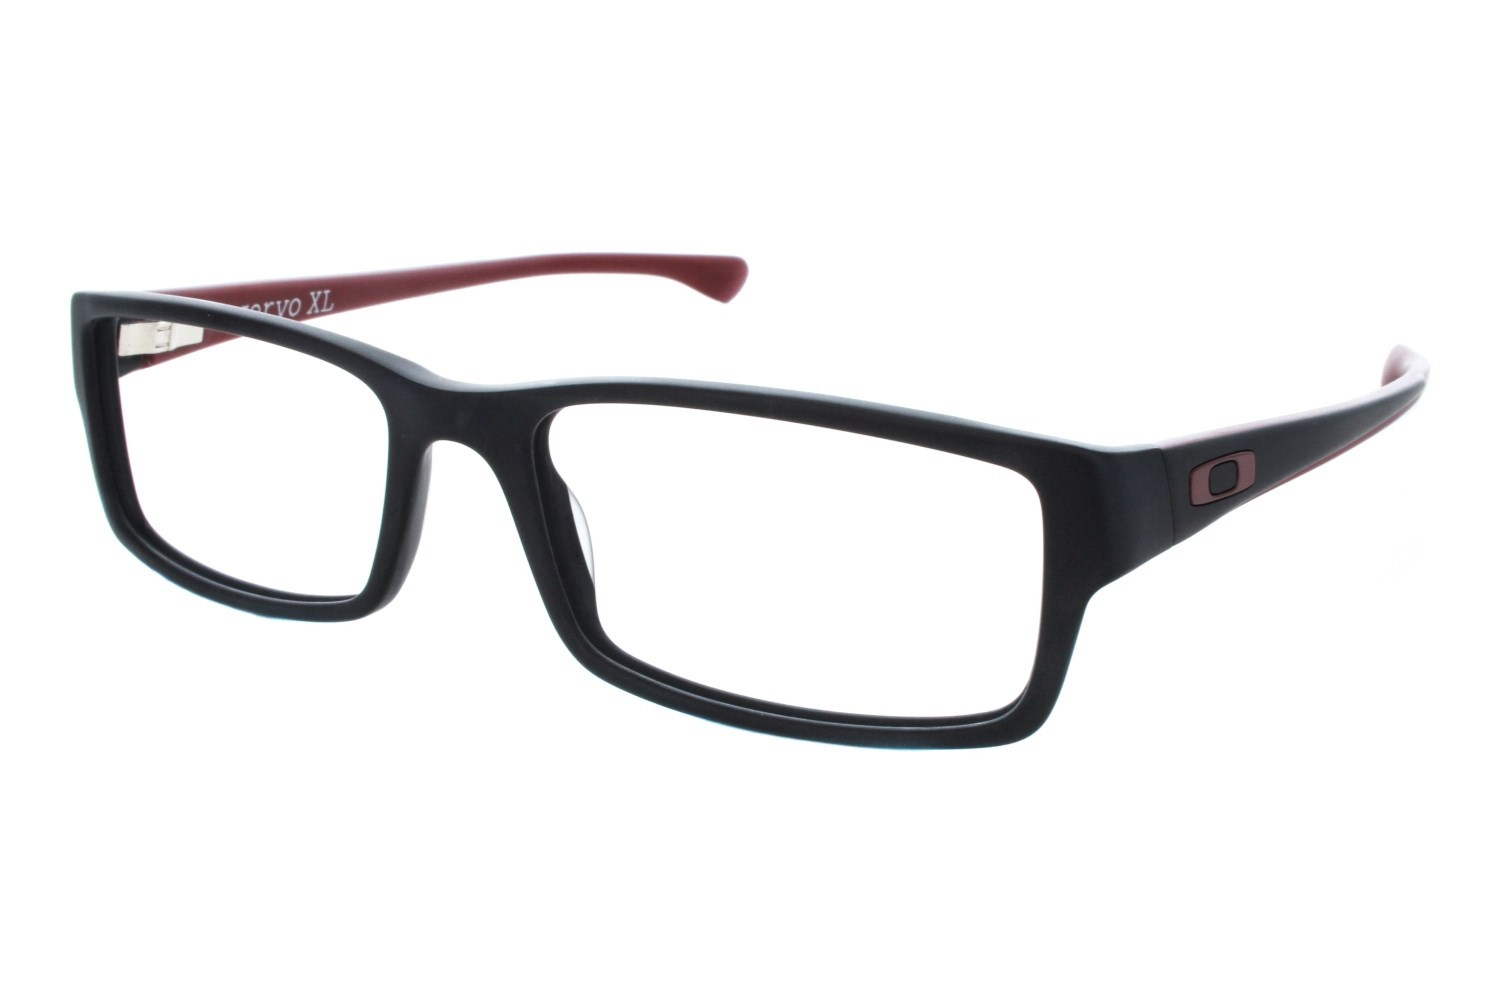 Oakley Frame Prescription Glasses : Oakley Servo (51) Prescription Eyeglasses ...